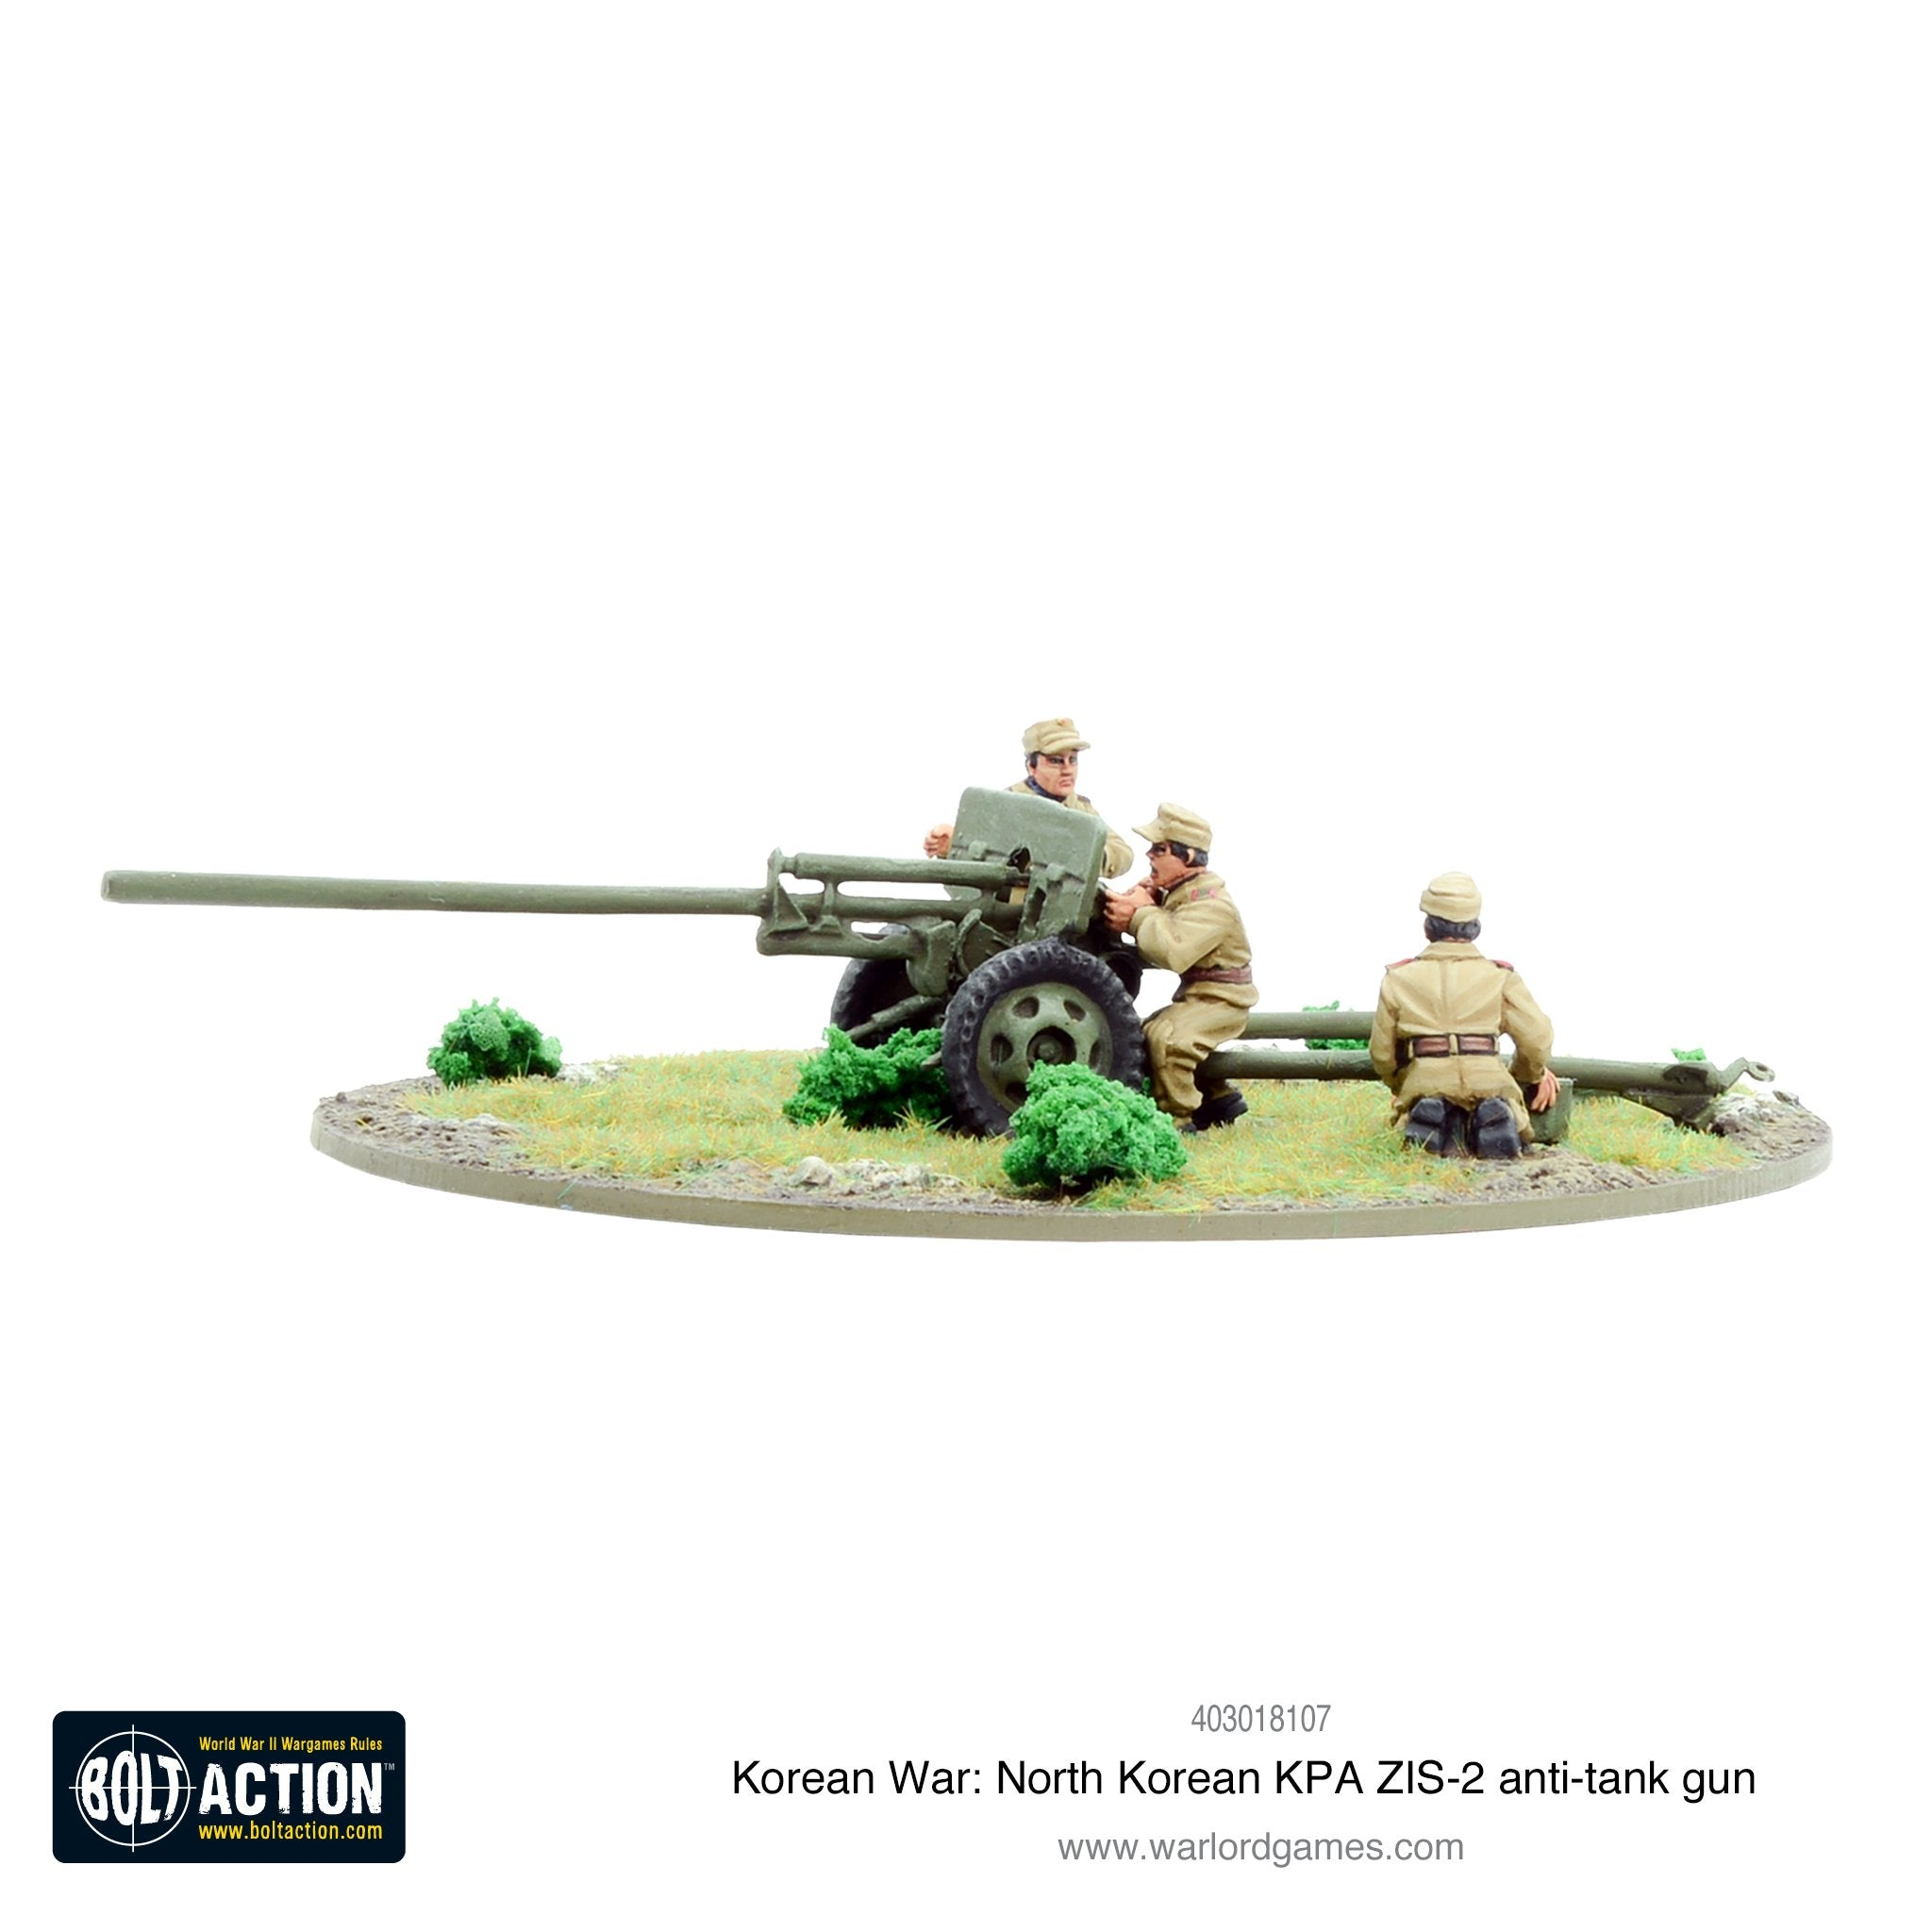 Korean War: North Korean KPA ZIS-2 anti-tank gun